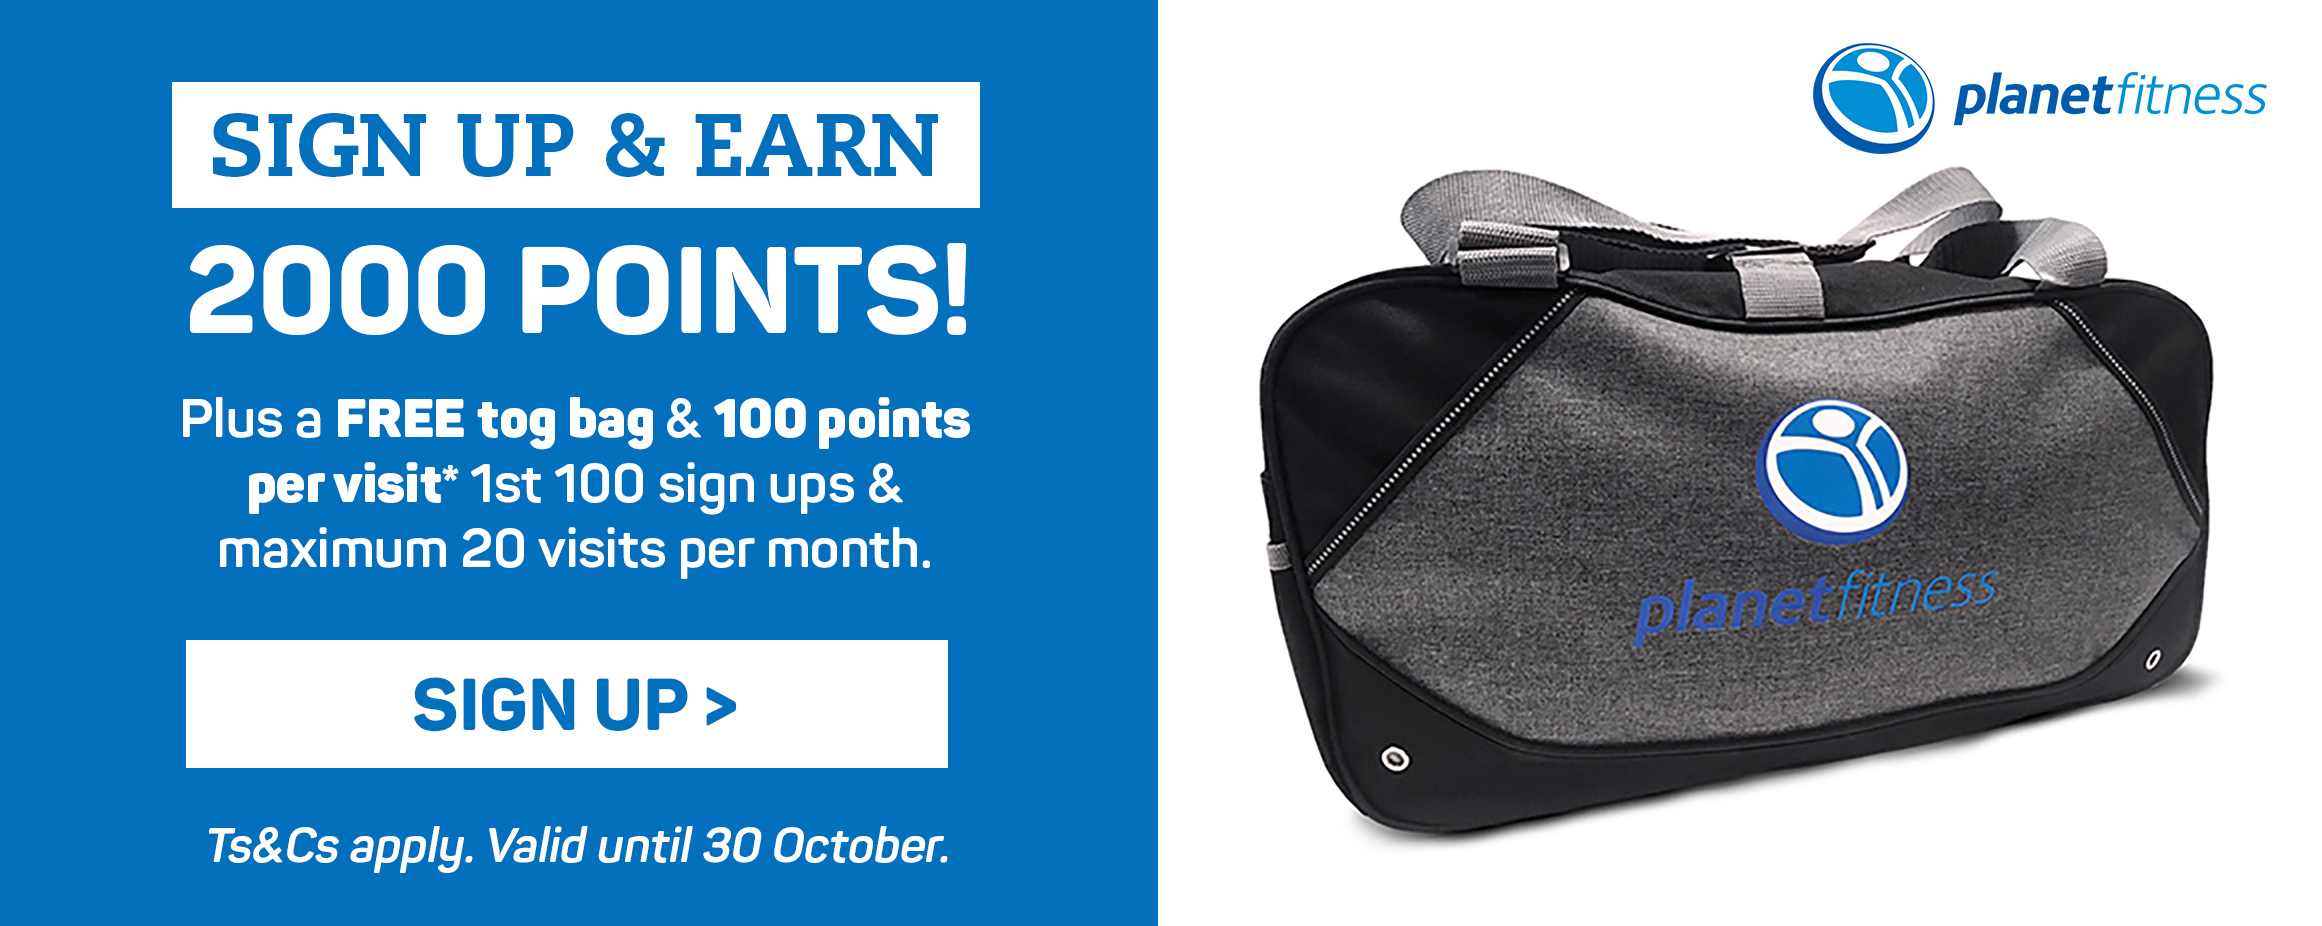 Sign up & earn 2000 points! Sign up